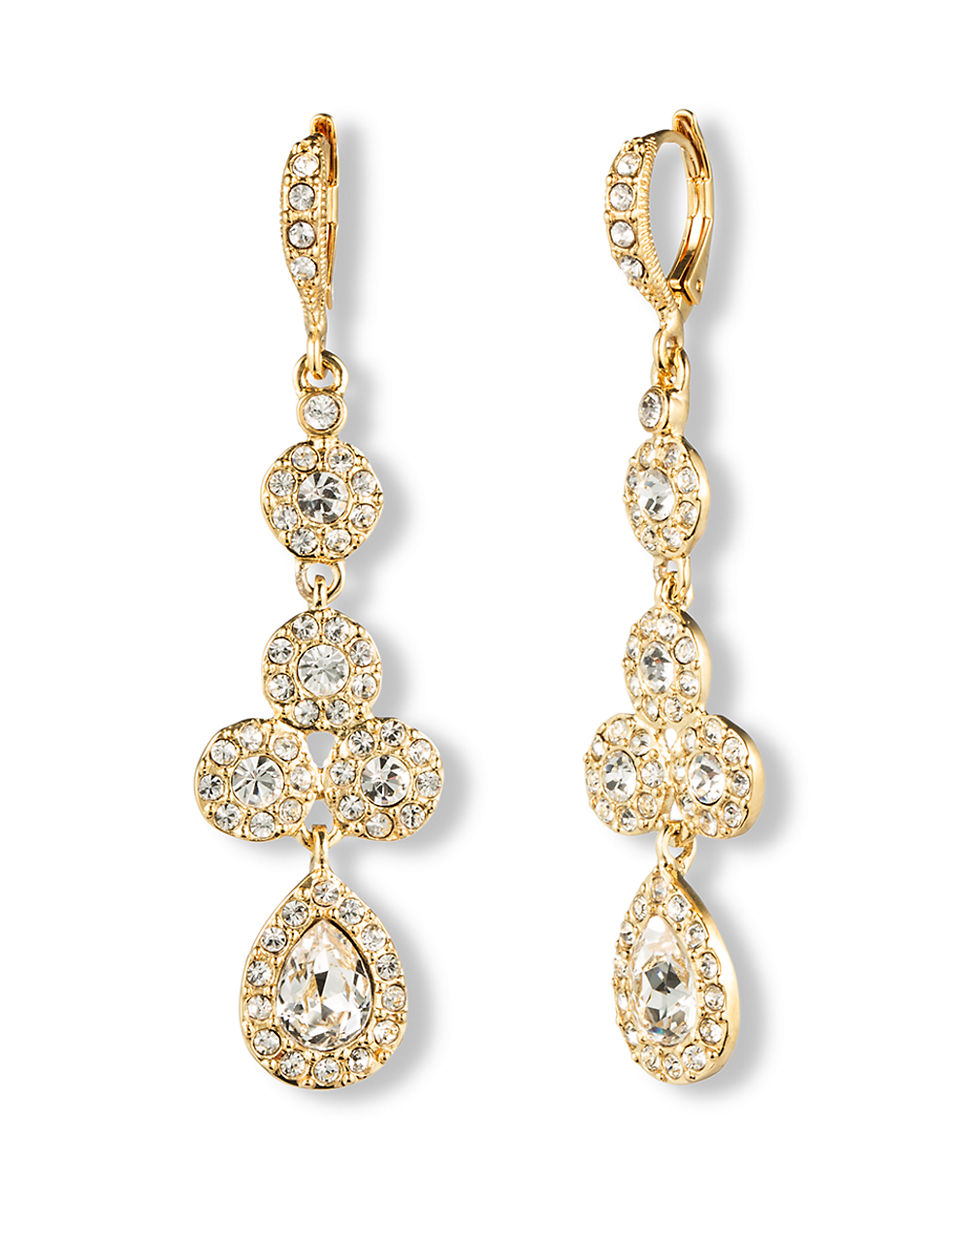 givenchy 10kt gold and linear pear drop earrings